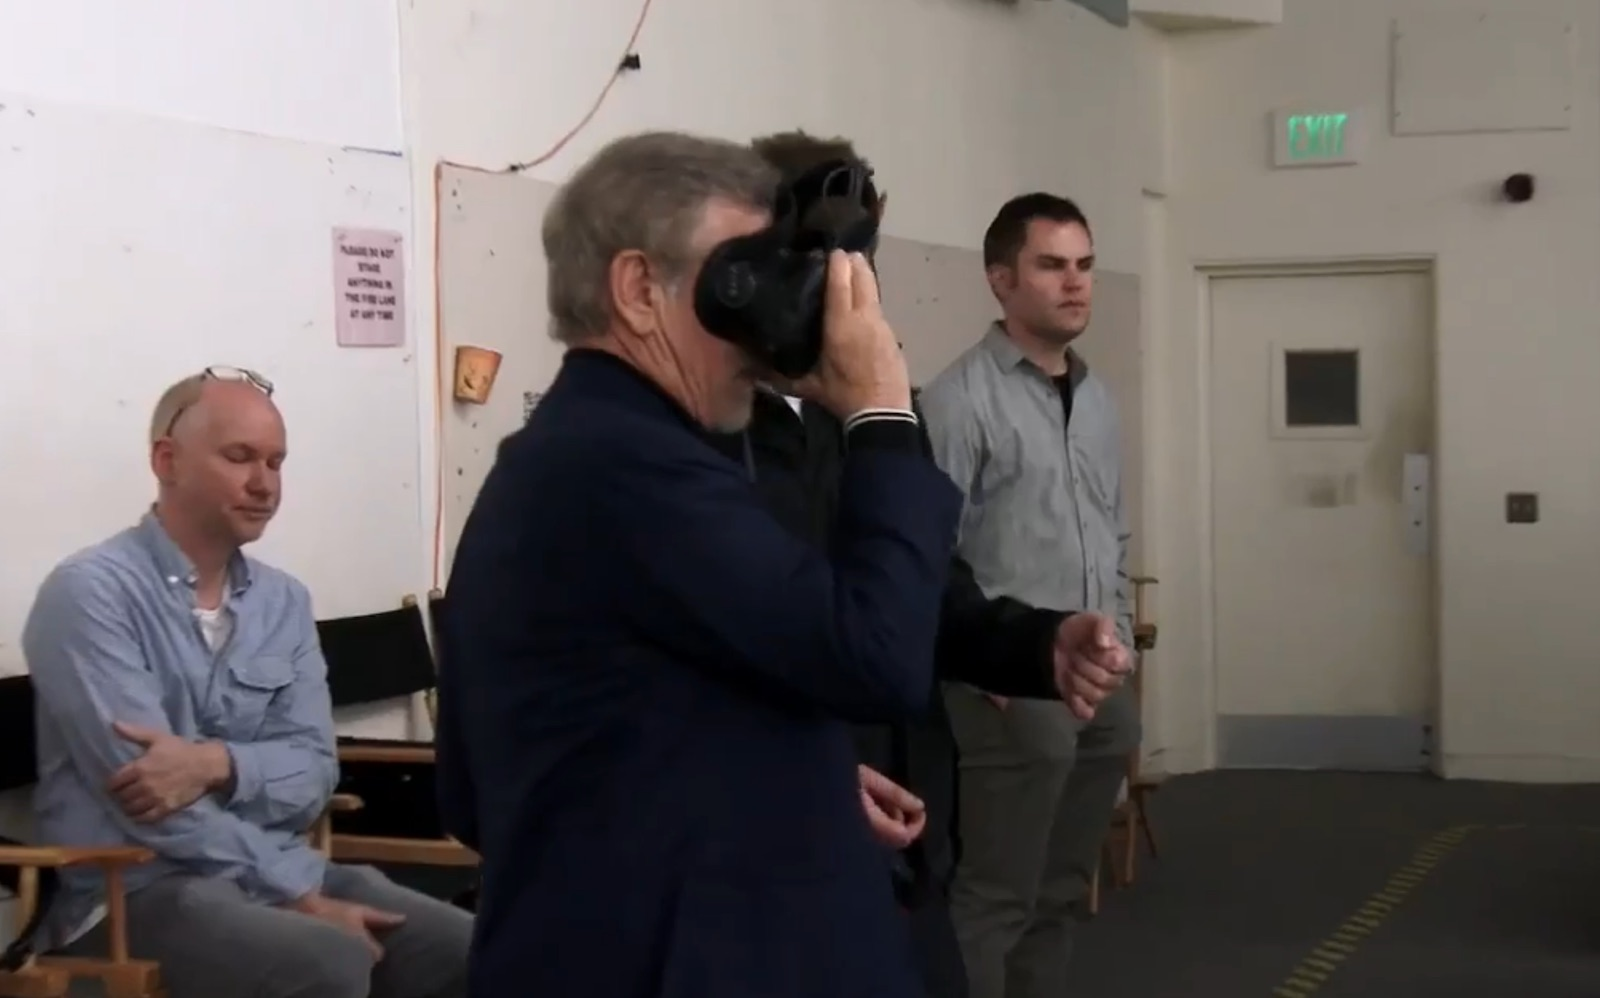 Check Out Steven Spielberg Using The HTC Vive Headset During The Making Of Ready Player One